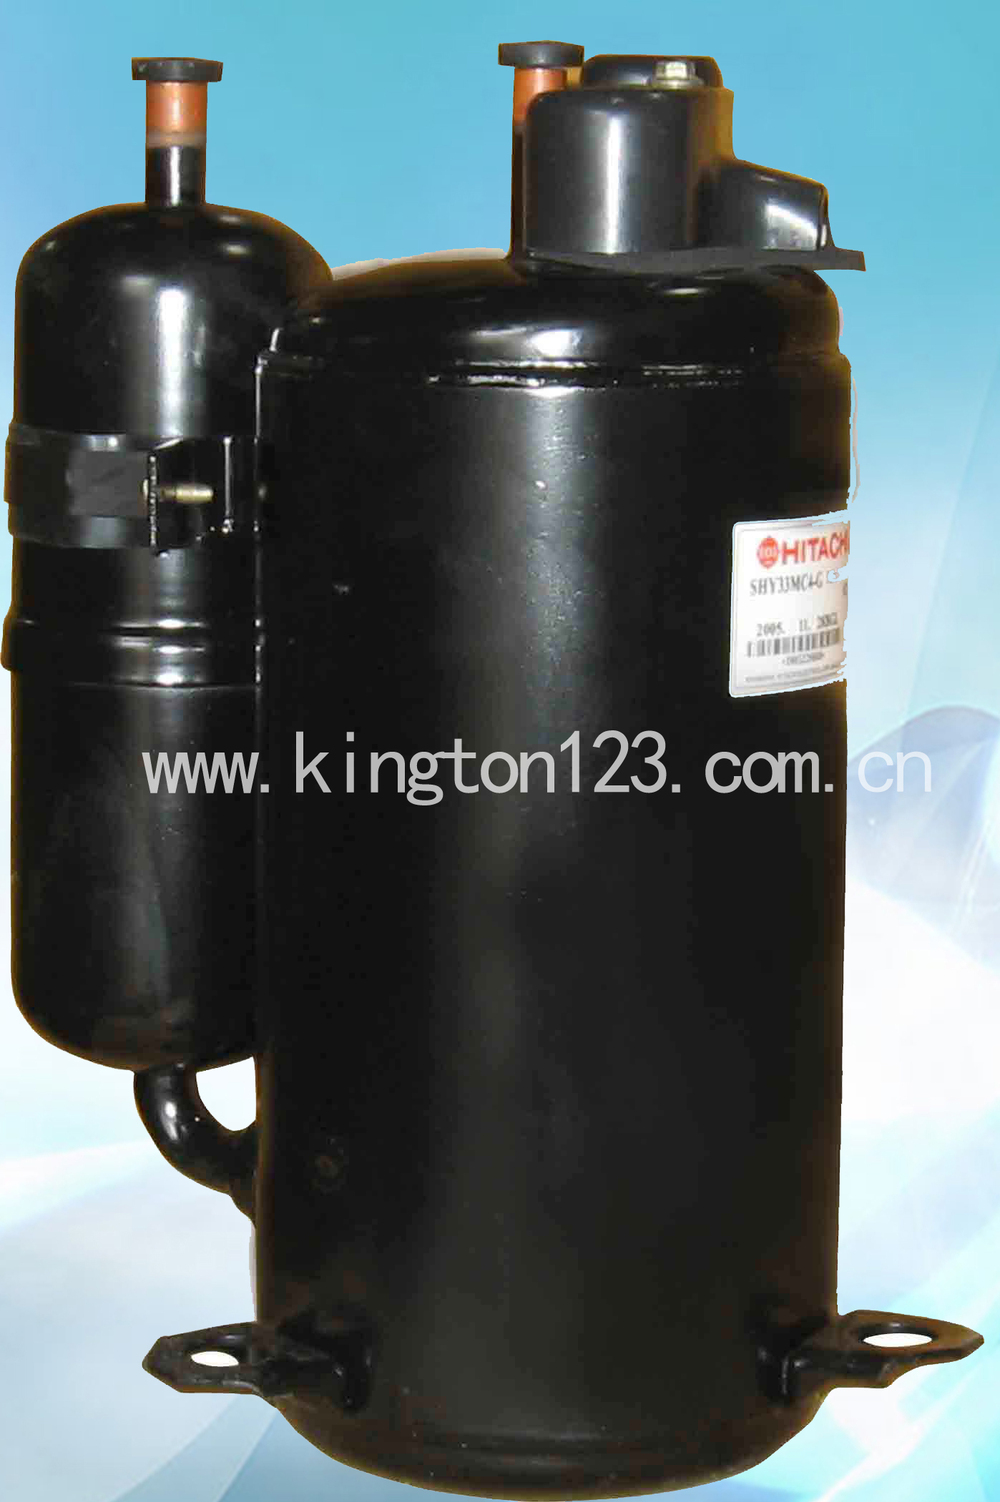 Hitachi Compressor for sale,scroll compressor for sale, hermetic compressor for sale 403DH-64D2Y